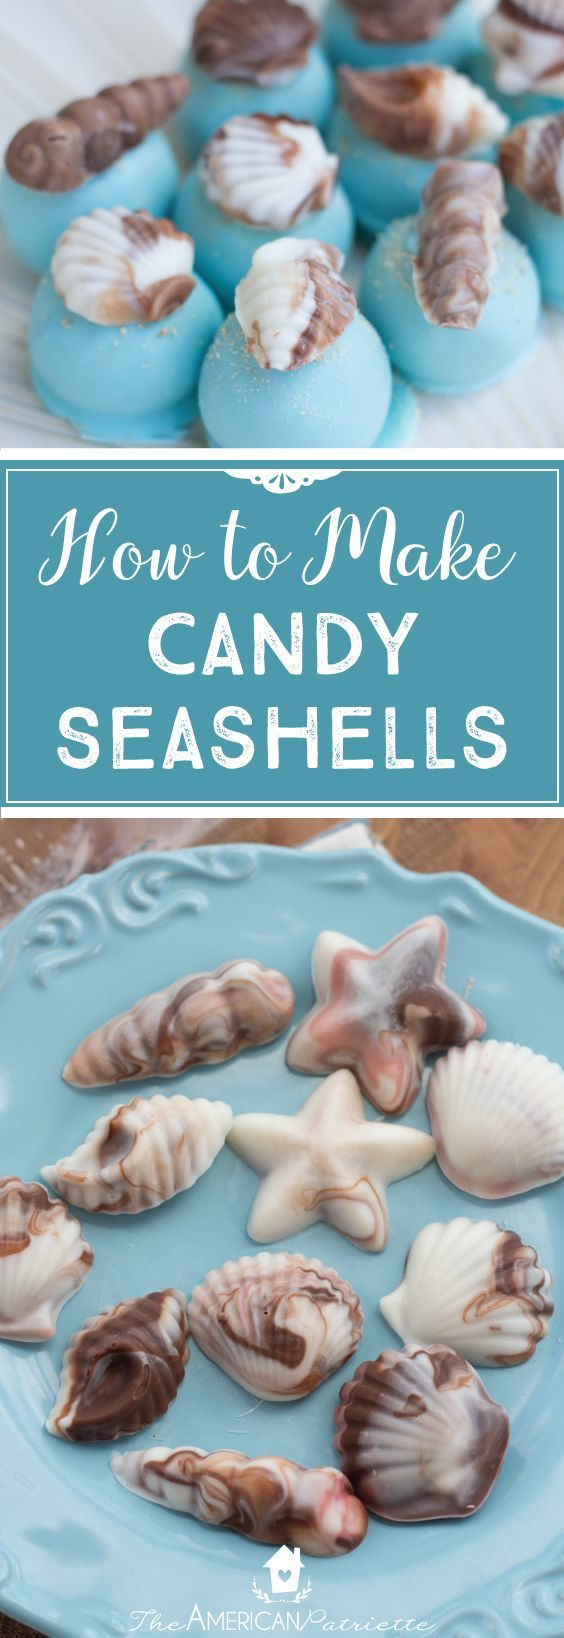 How to make candy seashells, beach-themed food, beach-themed shower, beach-themed party, beach-themed desserts